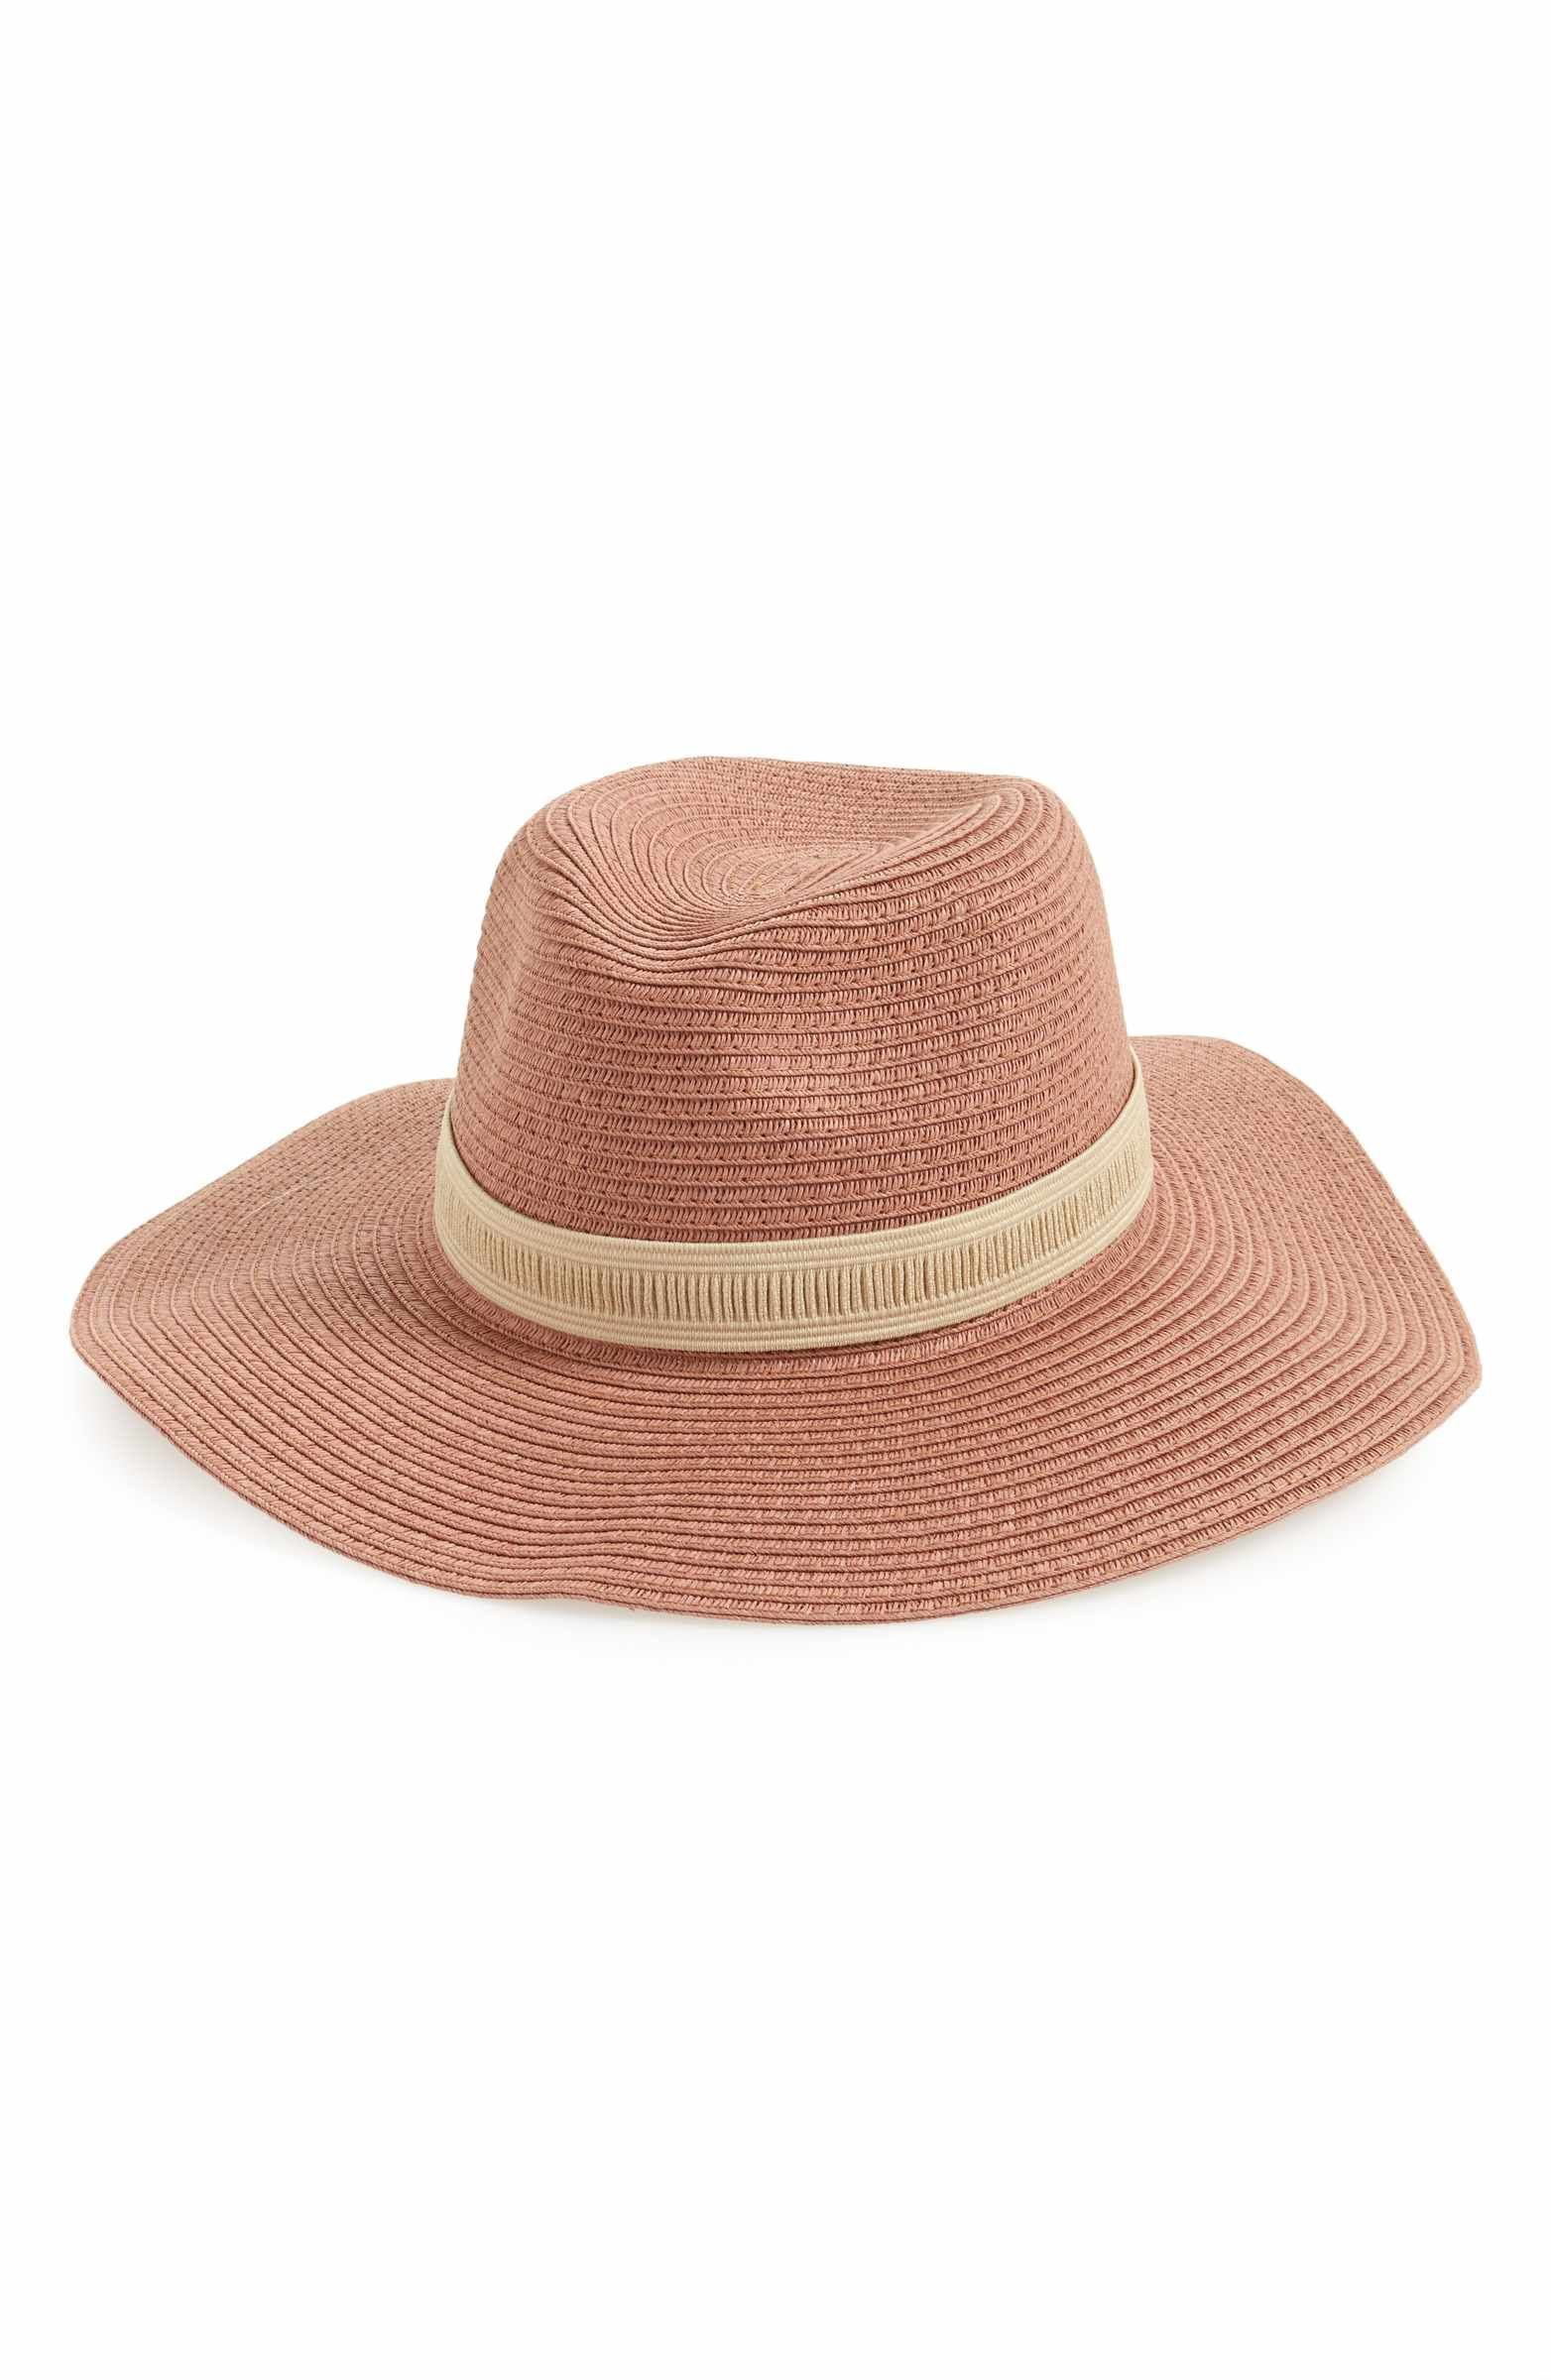 28f3f35bed6 Main Image - Madewell Mesa Packable Straw Hat